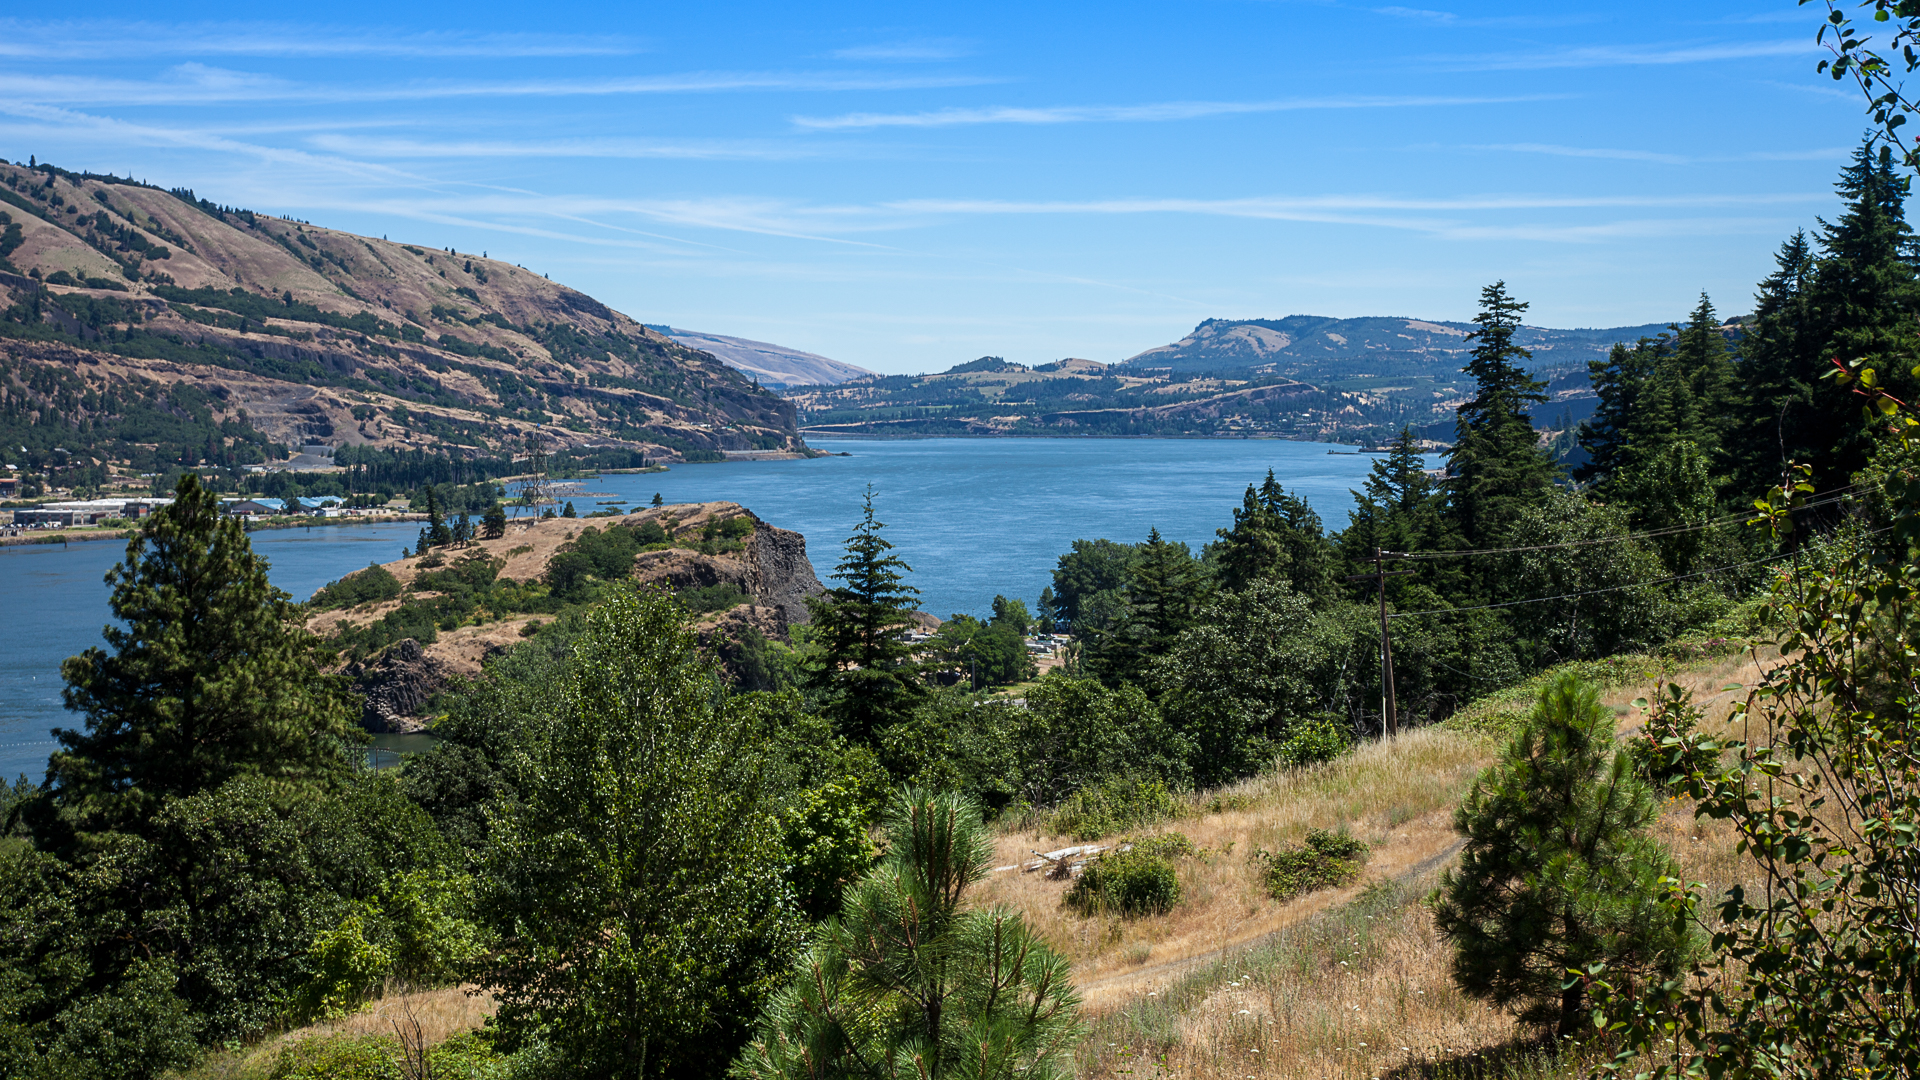 A view of the Columbia River from the start/end of our ride.